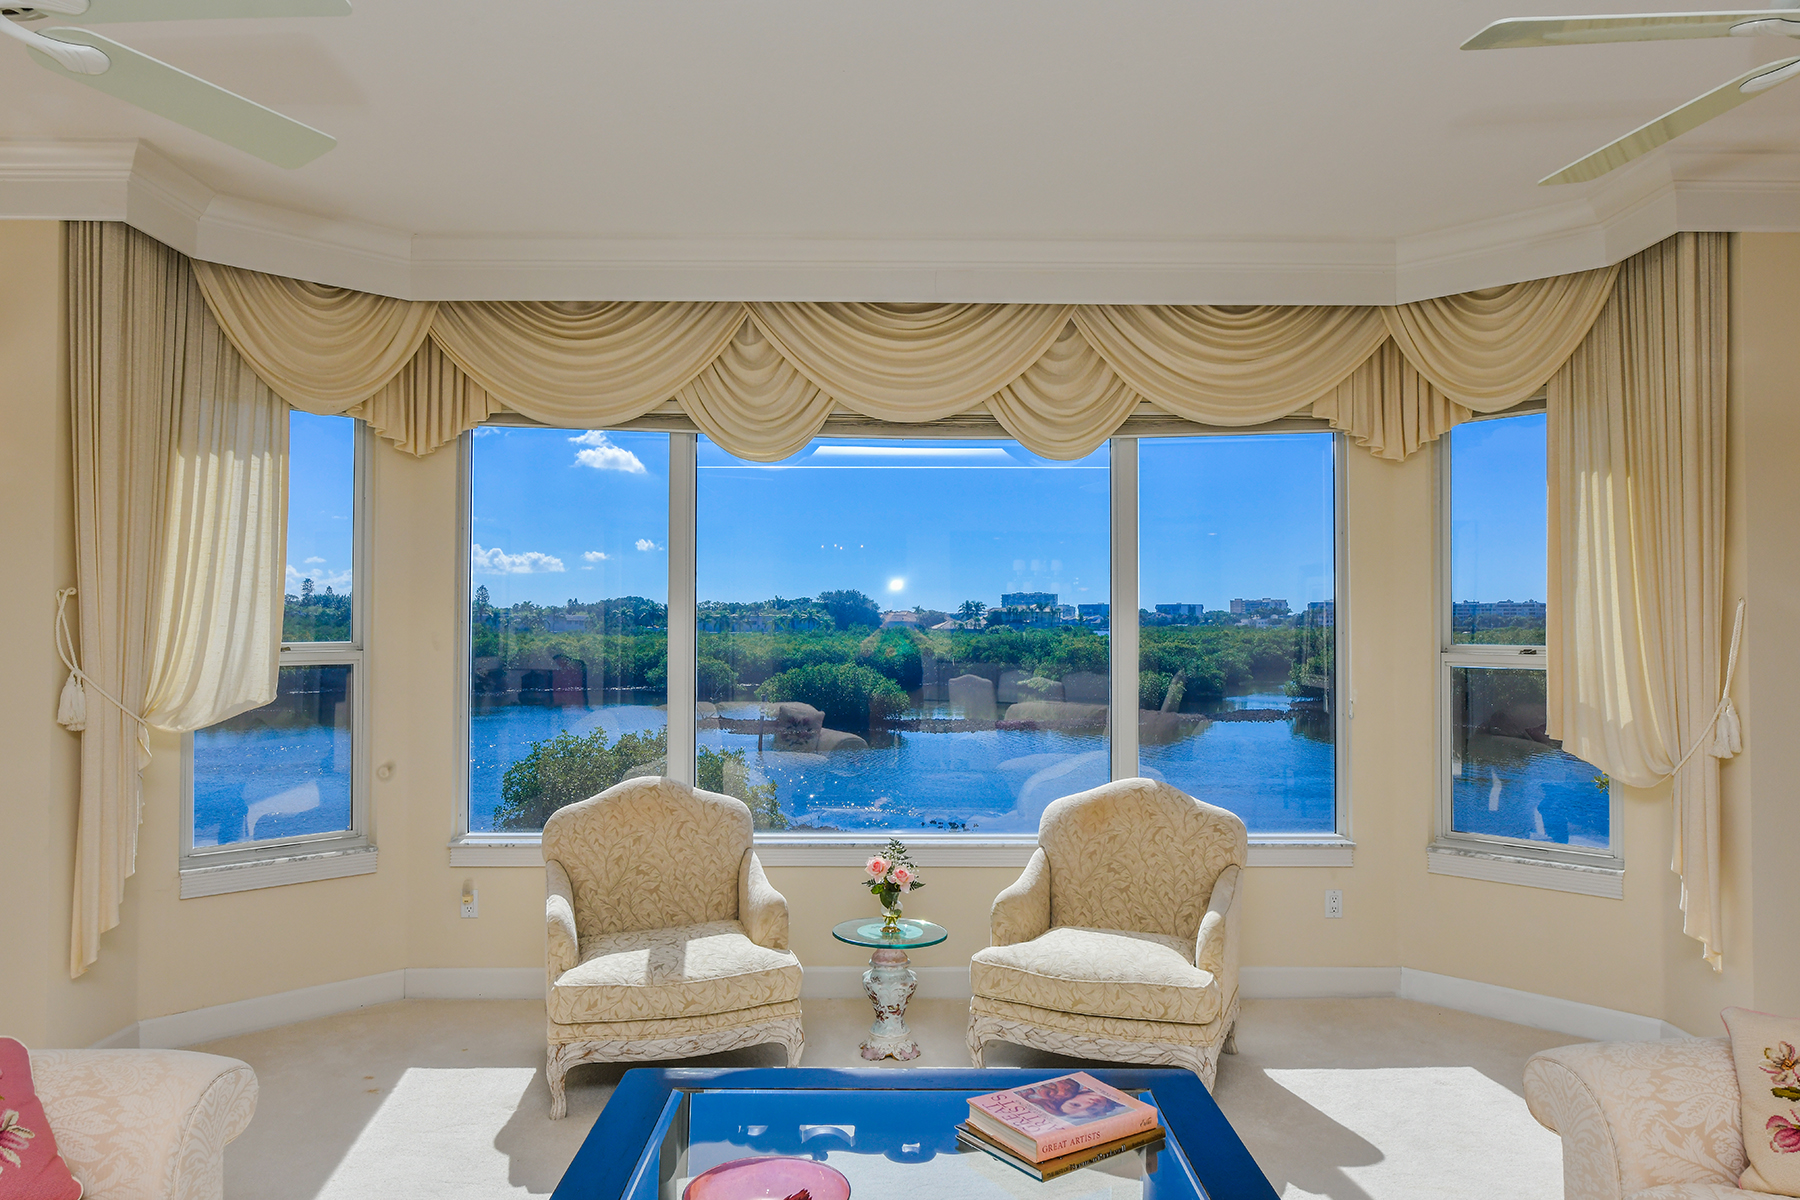 Condominium for Sale at EAGLES POINT AT THE LANDINGS 3 5440 Eagles Point Cir 103, Sarasota, Florida 34231 United States